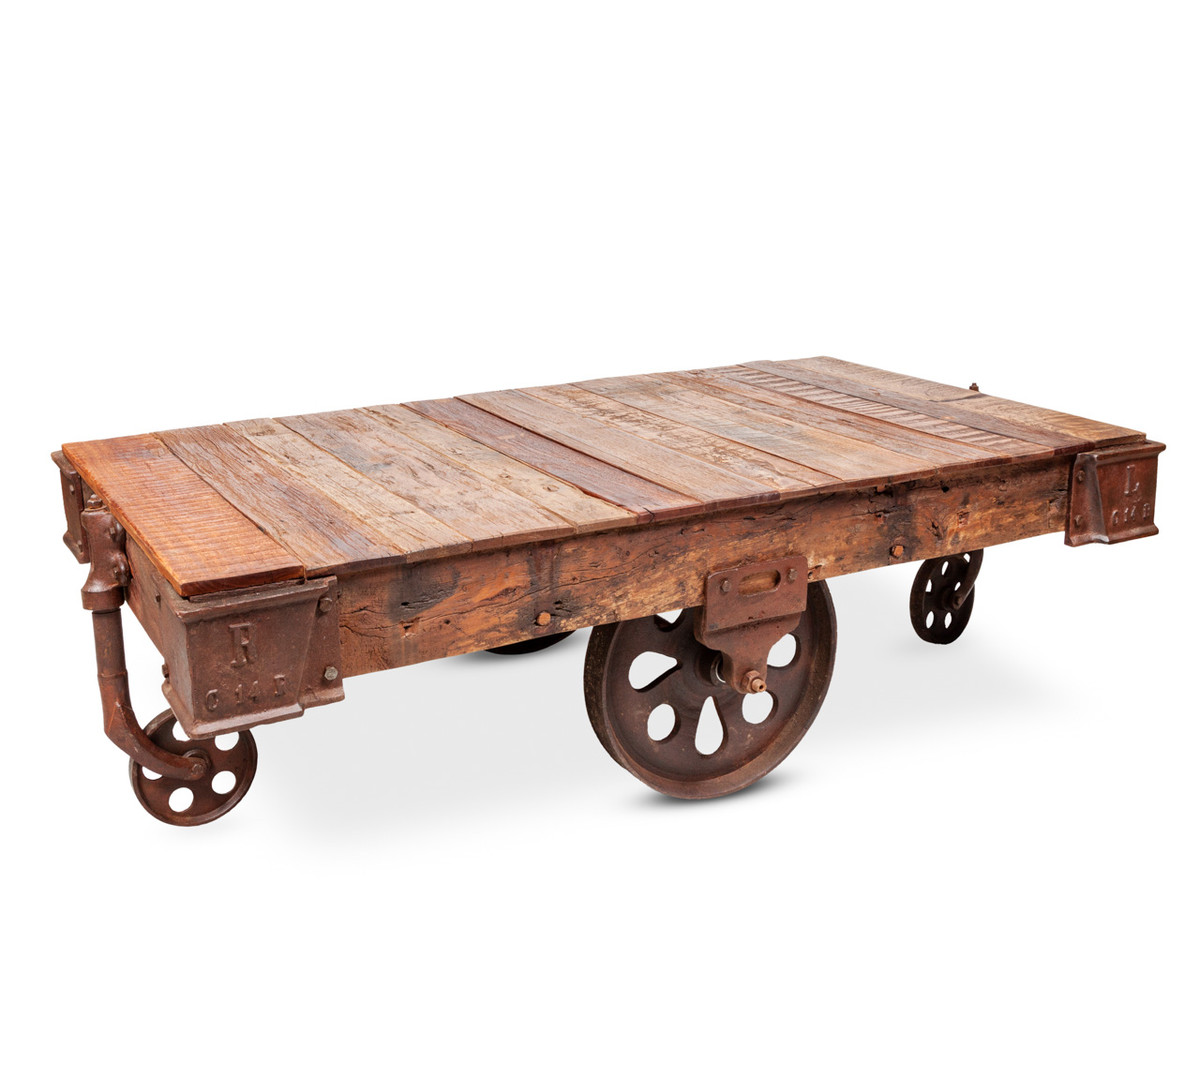 Reclaimed Timber Cart Coffee Table Buy Coffee Tables Online